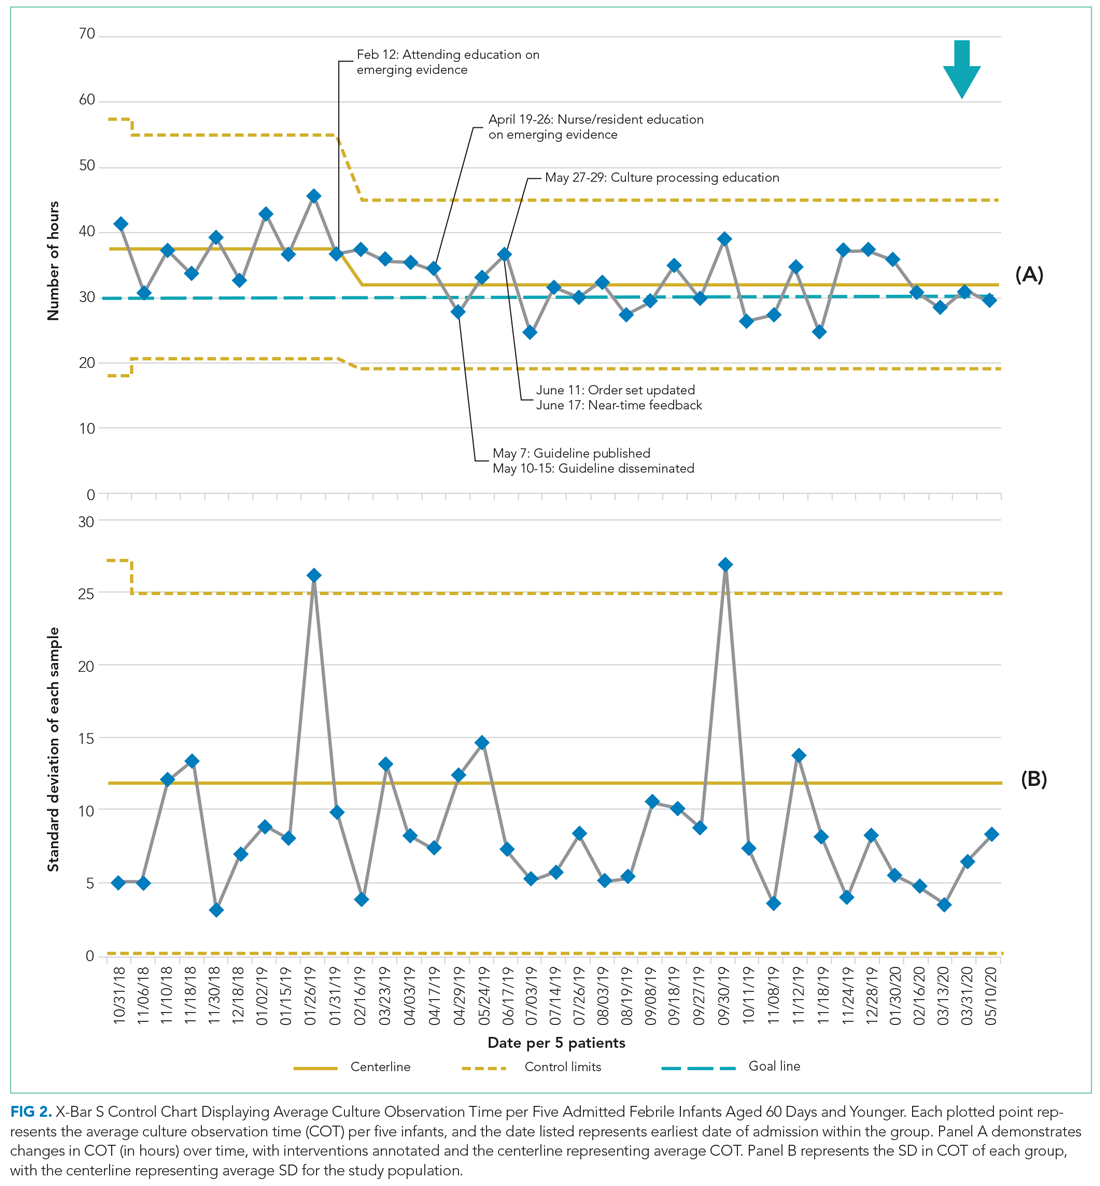 X-Bar S Control Chart Displaying Average Culture Observation Time per Five Admitted Febrile Infants Aged 60 Days and Younger